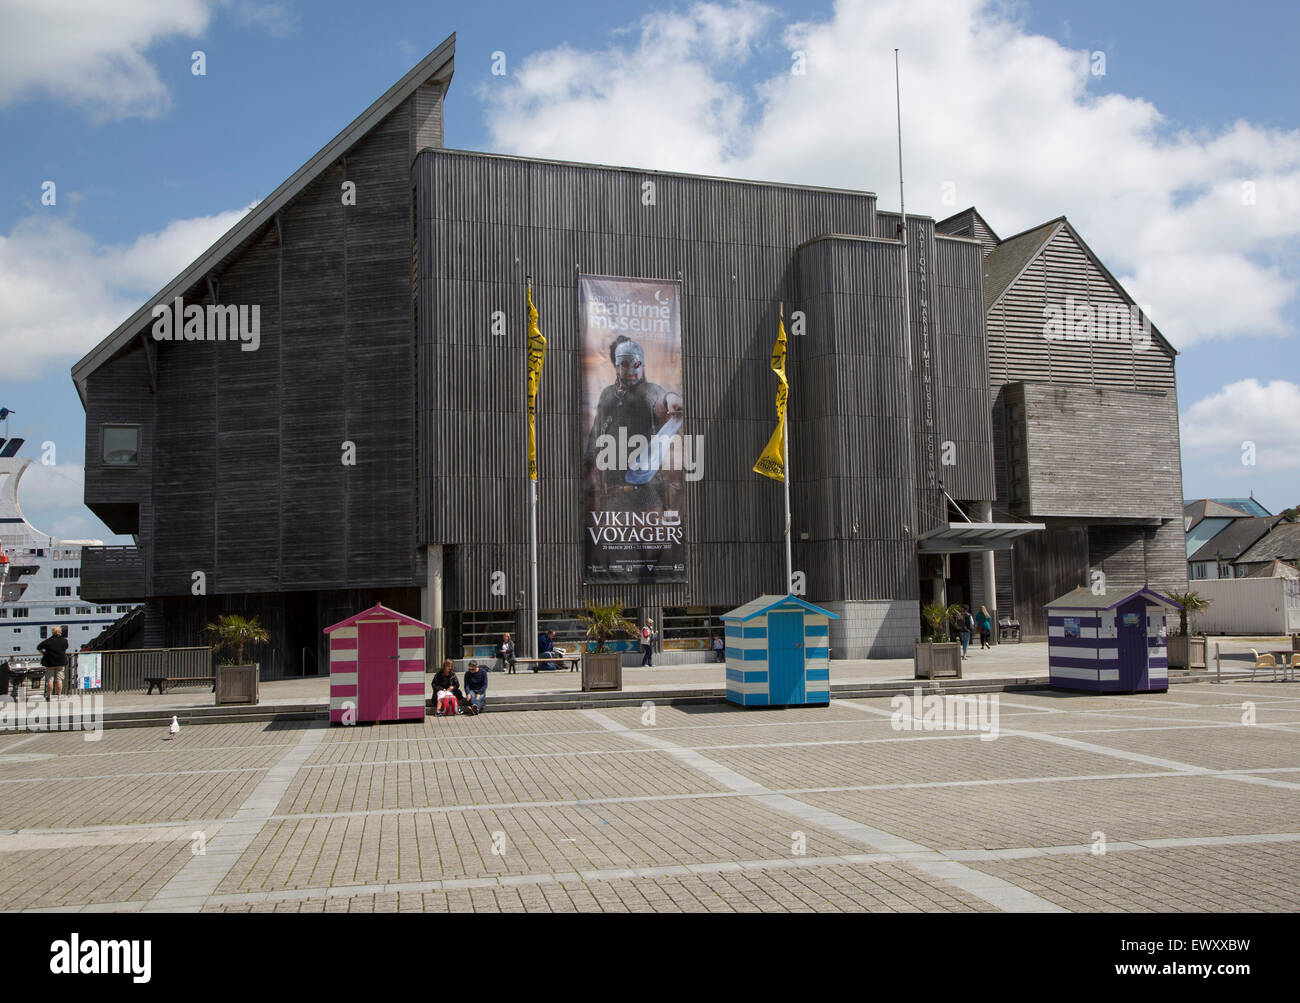 Advert for Viking Voyager exhibition at the National Maritime museum Falmouth, Cornwall, England, UK - Stock Image